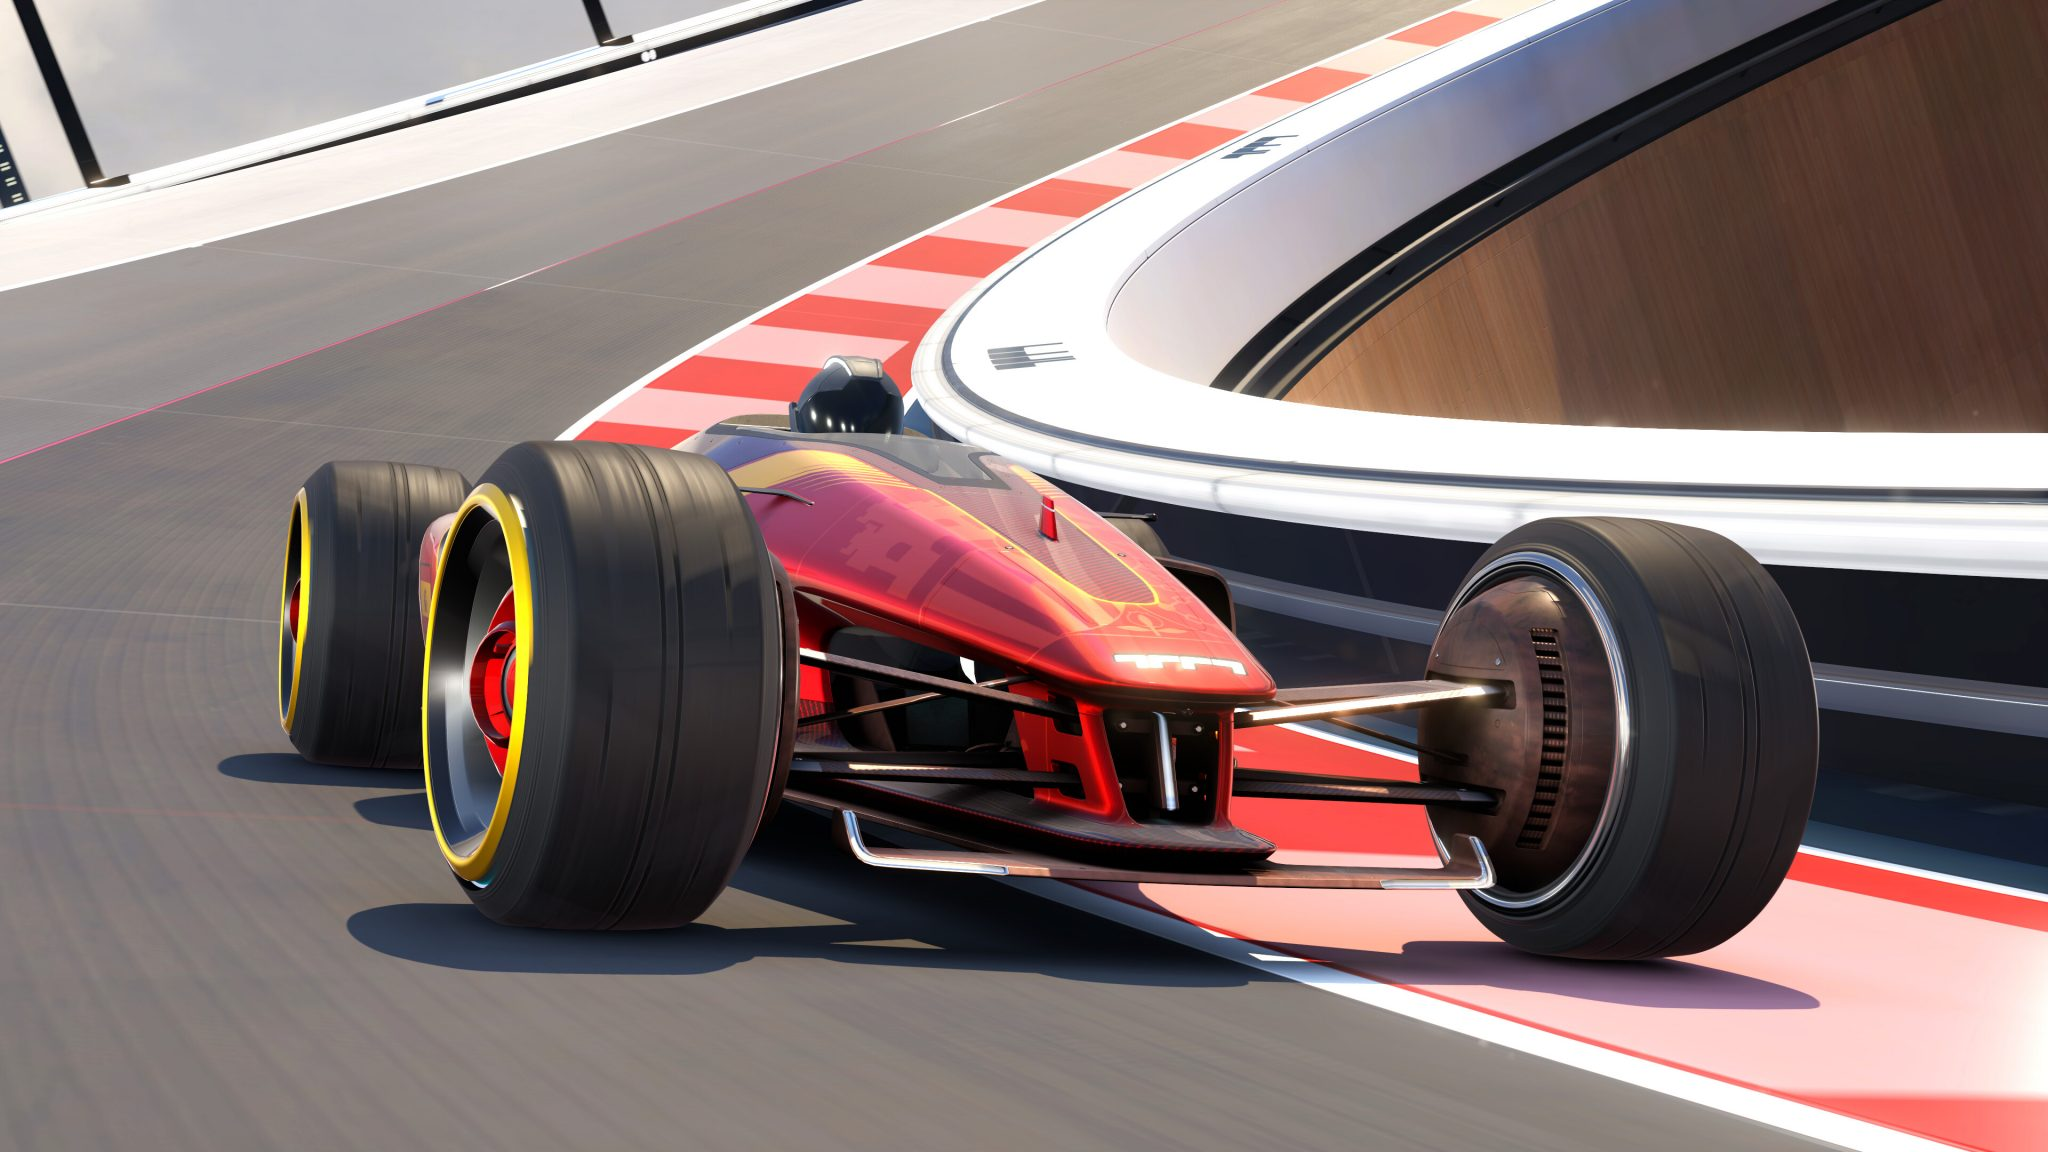 Trackmania Review — A Niche Experience That Delivers on the Asphalt